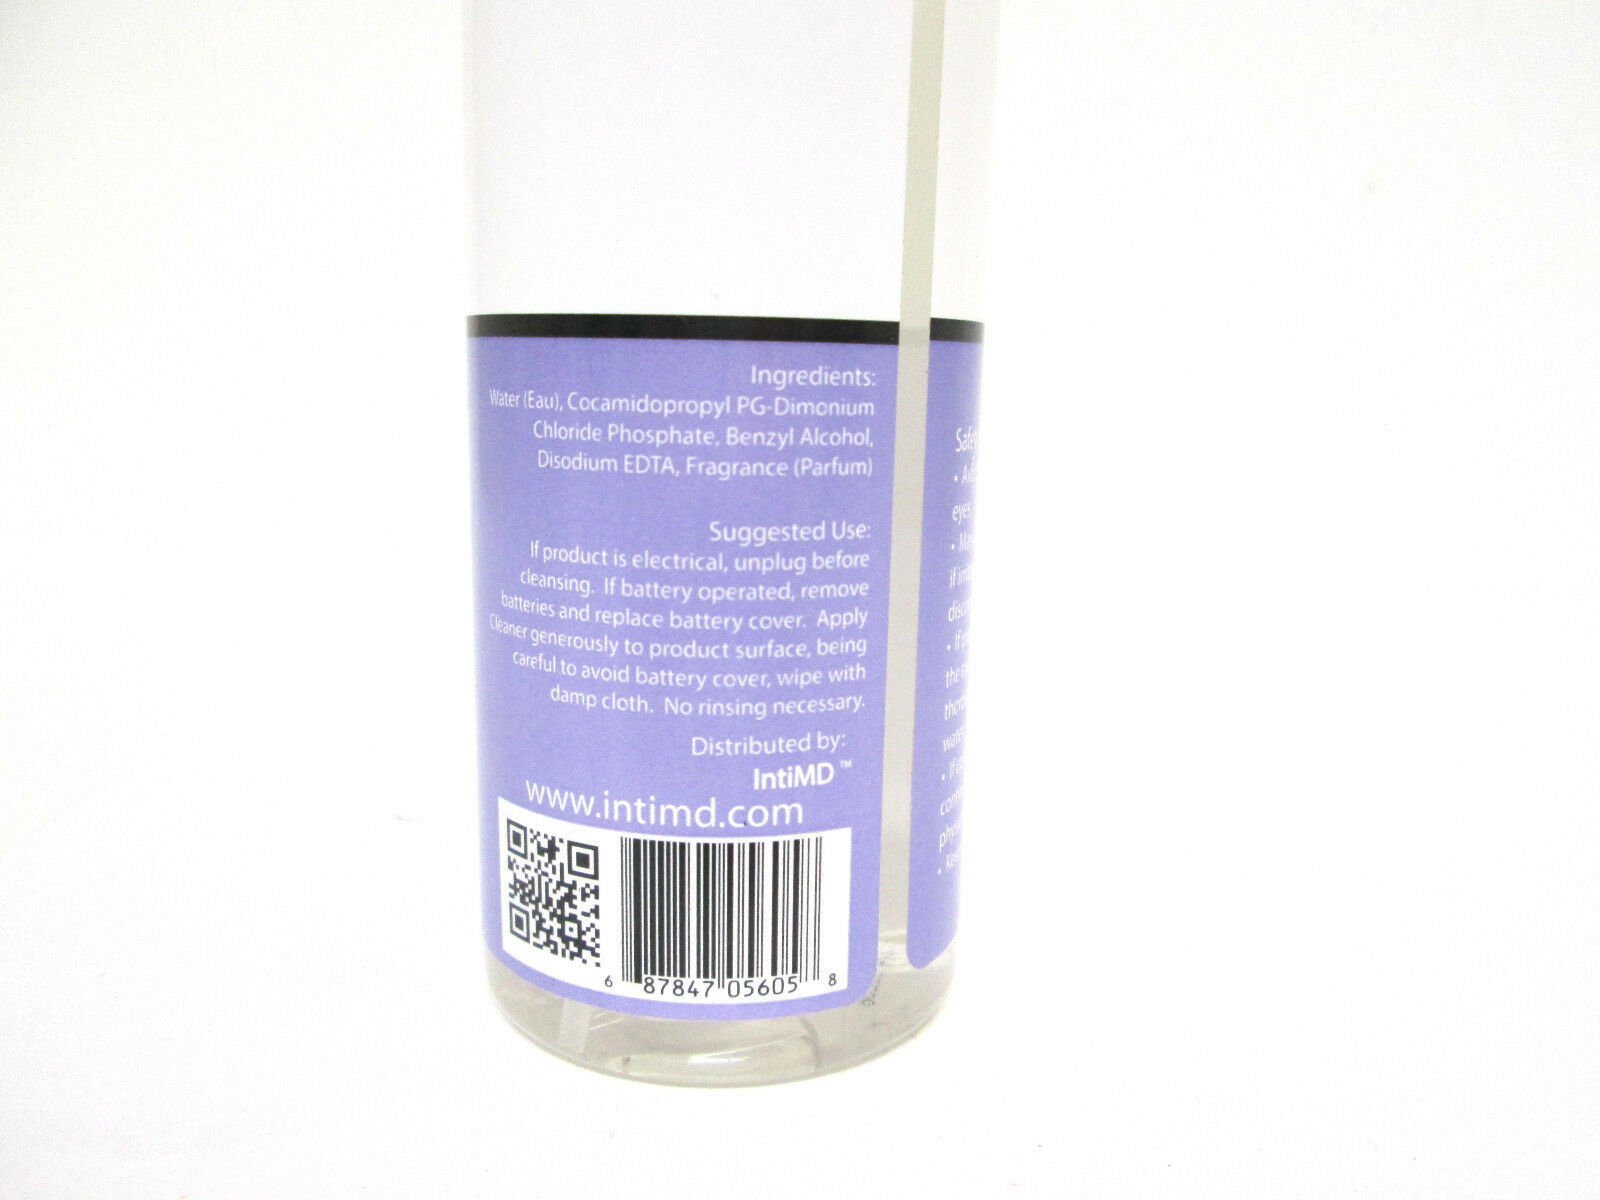 IntiMD Anti-Bacterial Cleaner Soap-Free Formula - 8 oz [HB-A-I] image 2